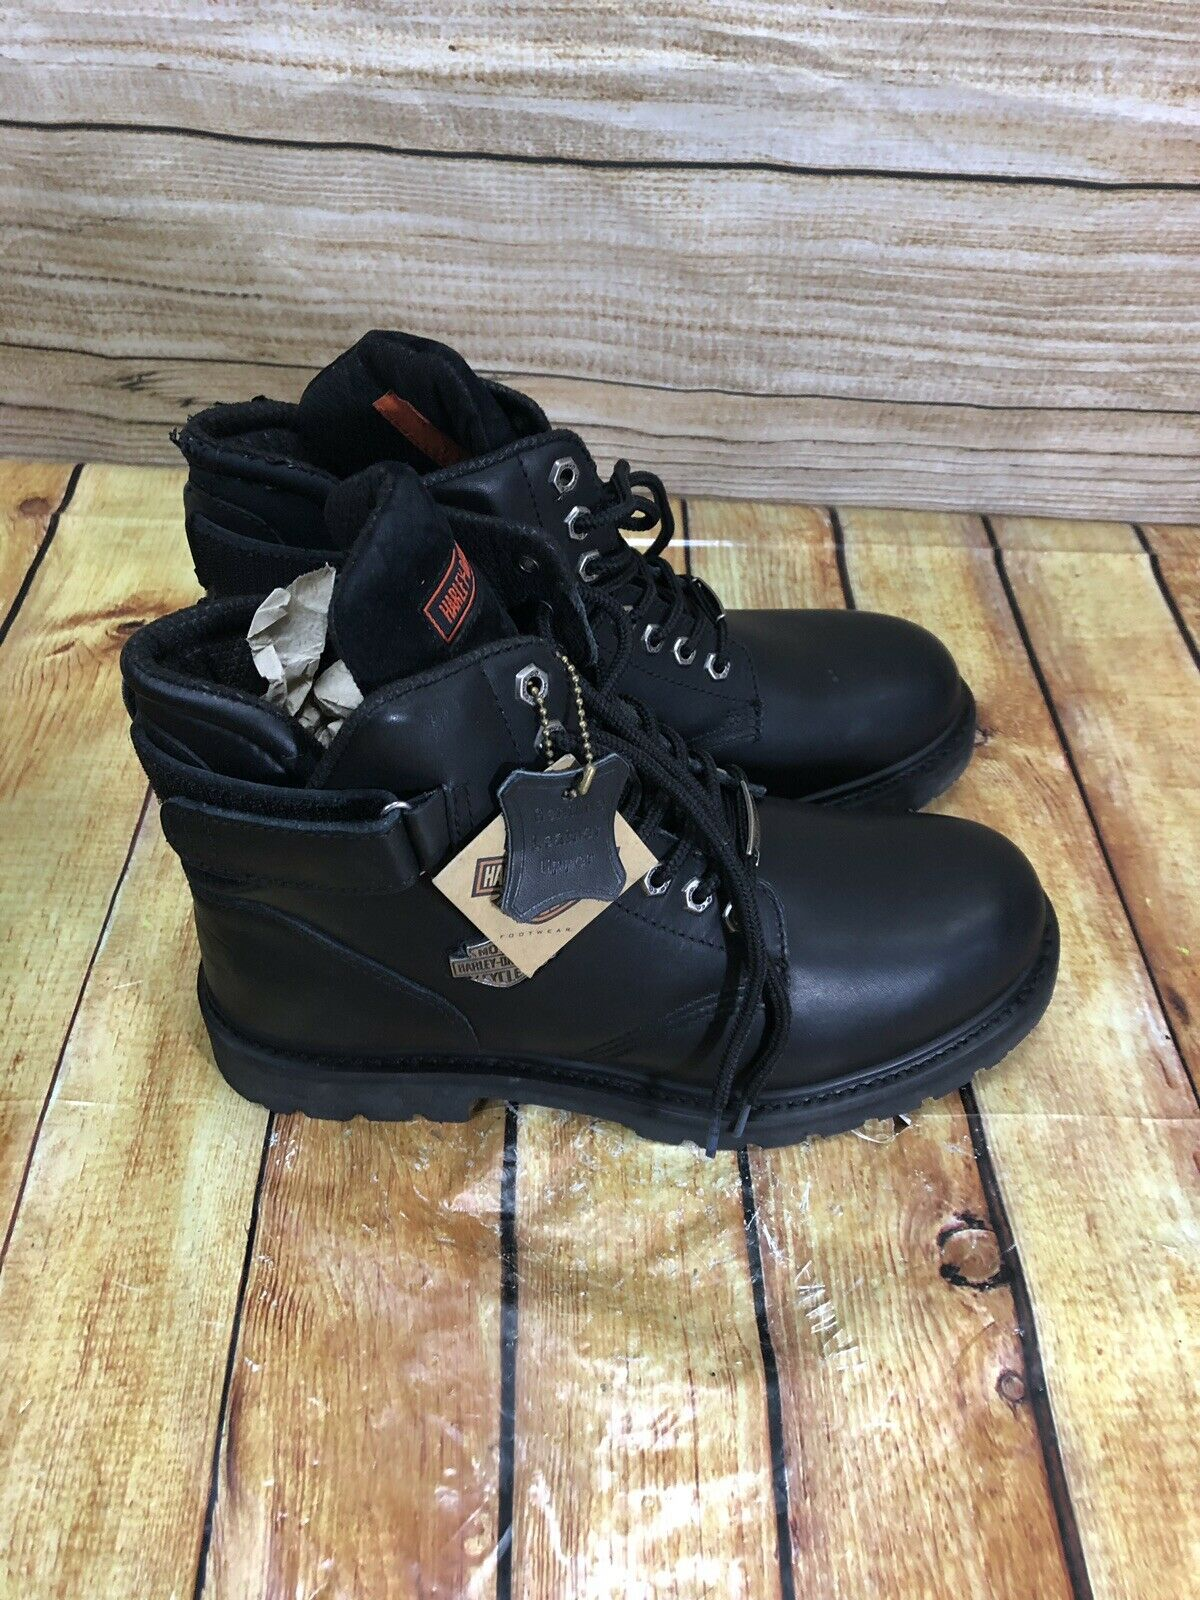 New Harley Davidson 91017 Boots Size 11 With Box